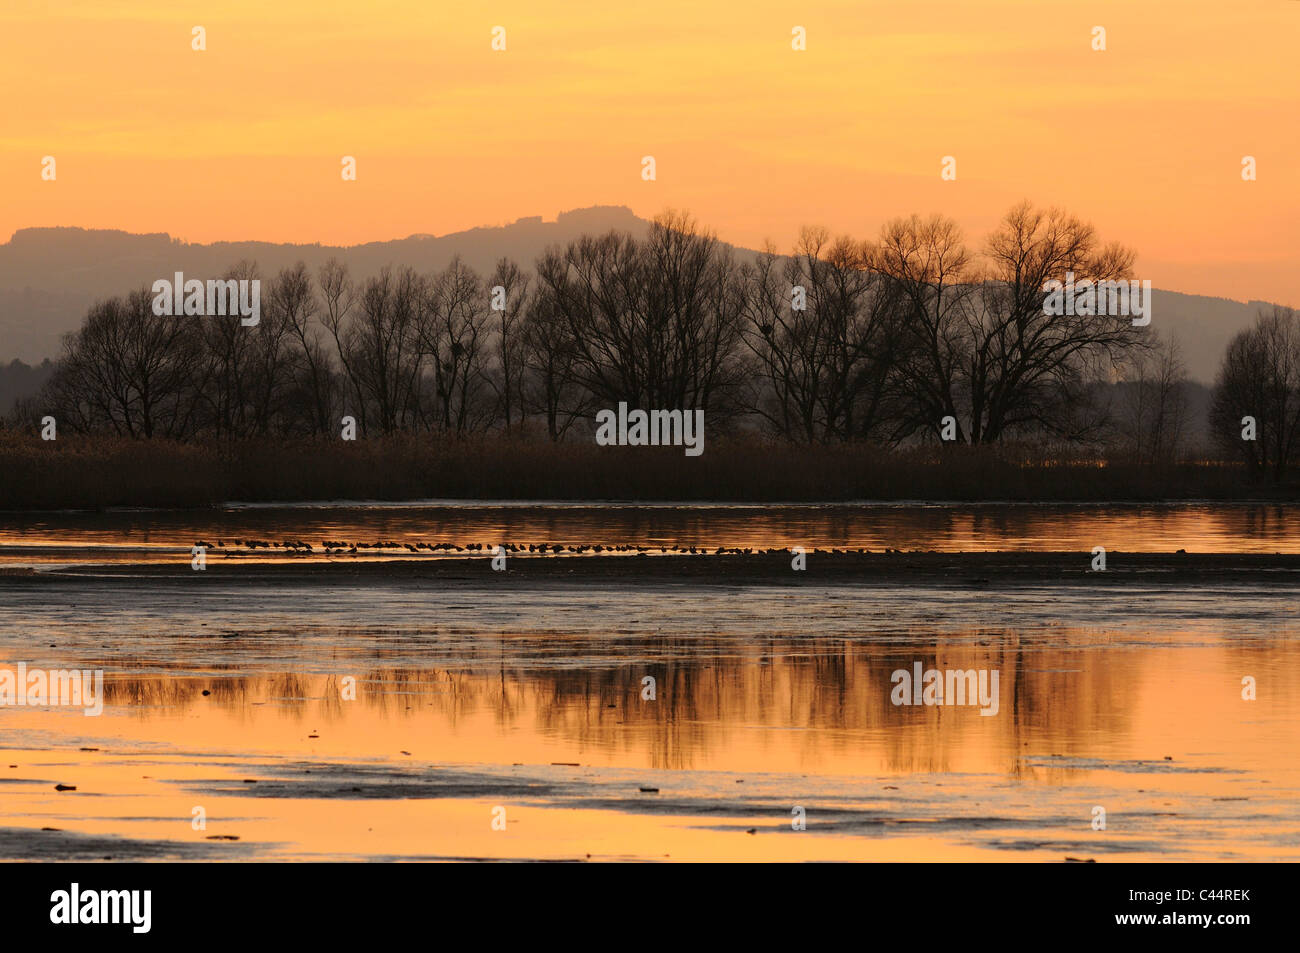 Dusk, Lake of Constance, lake, willows, trees, reflections, near Hochst, Vorarlberg, Austria - Stock Image